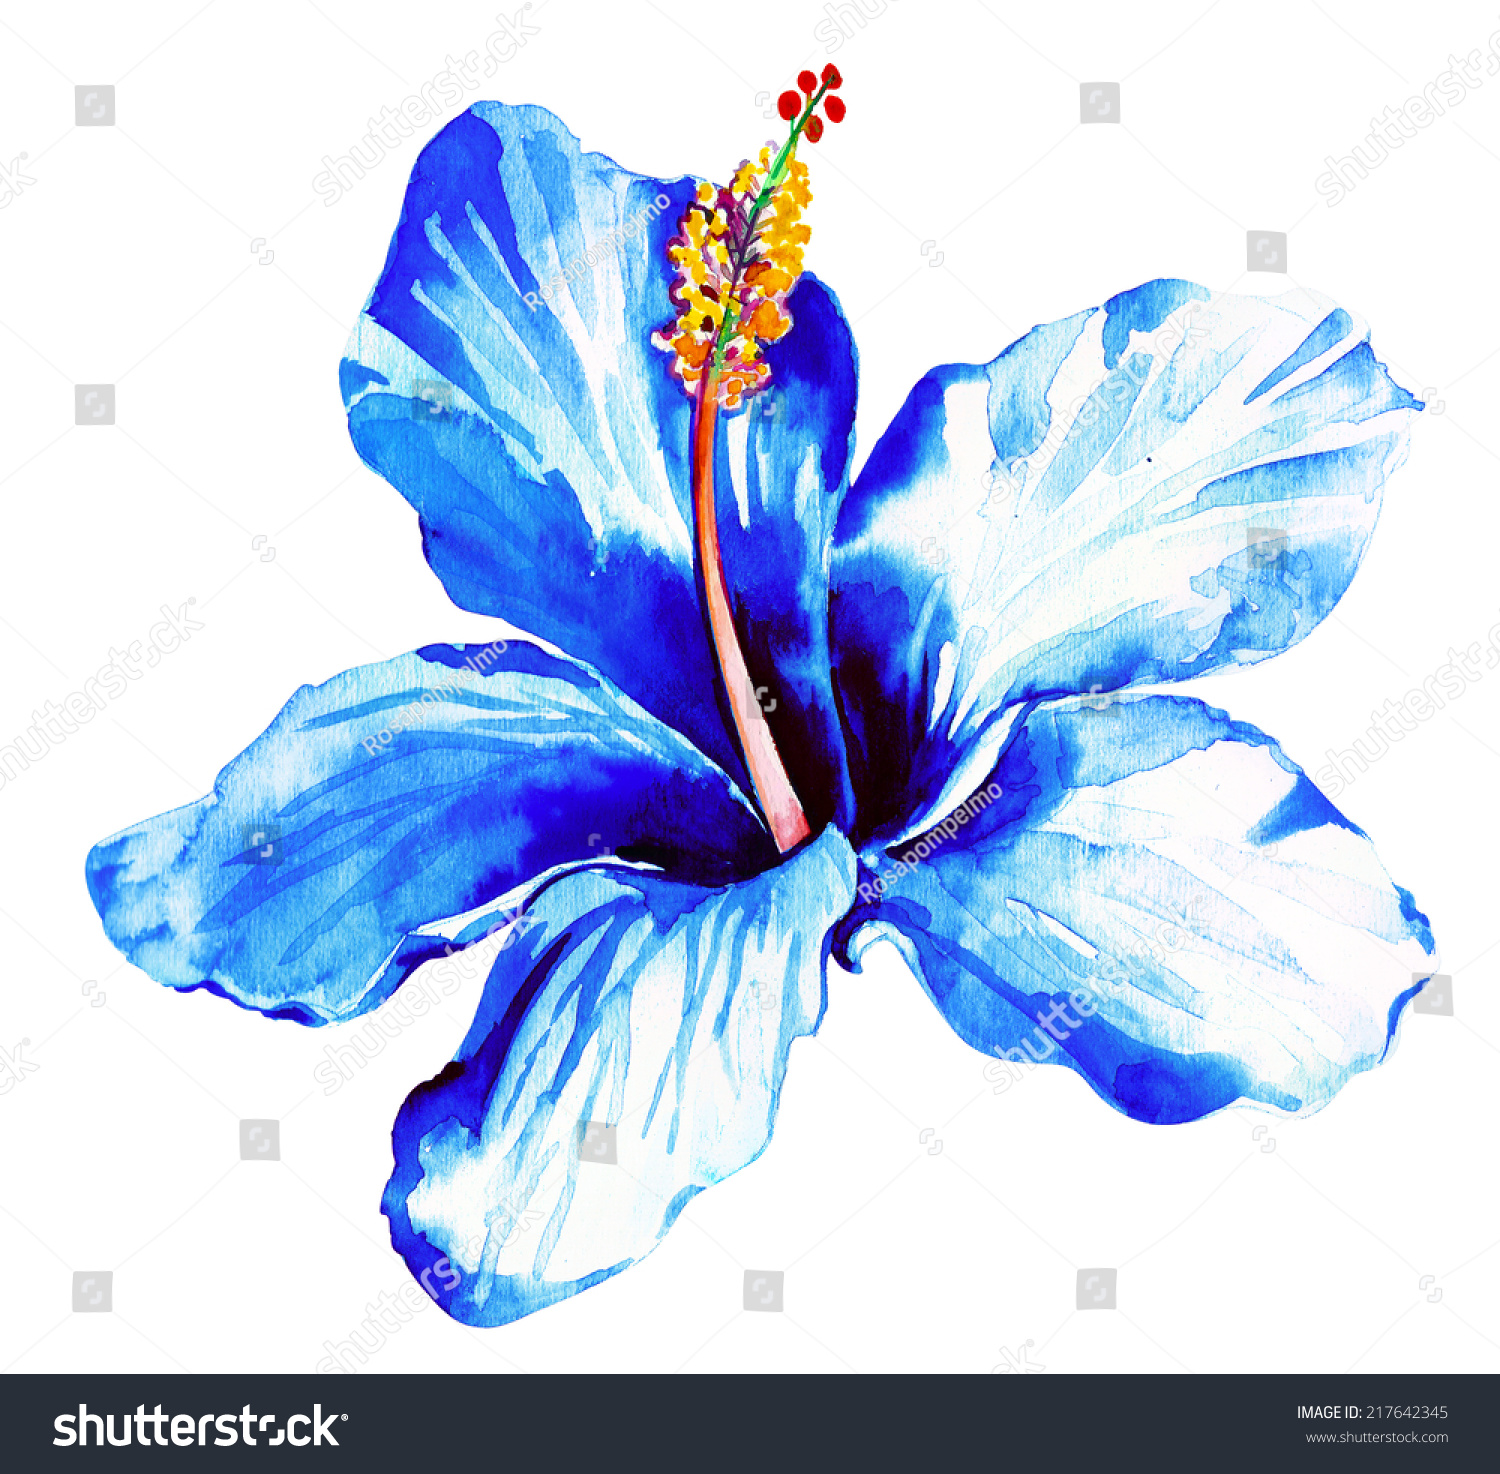 Gallery For gt Blue Hibiscus Flower Drawing